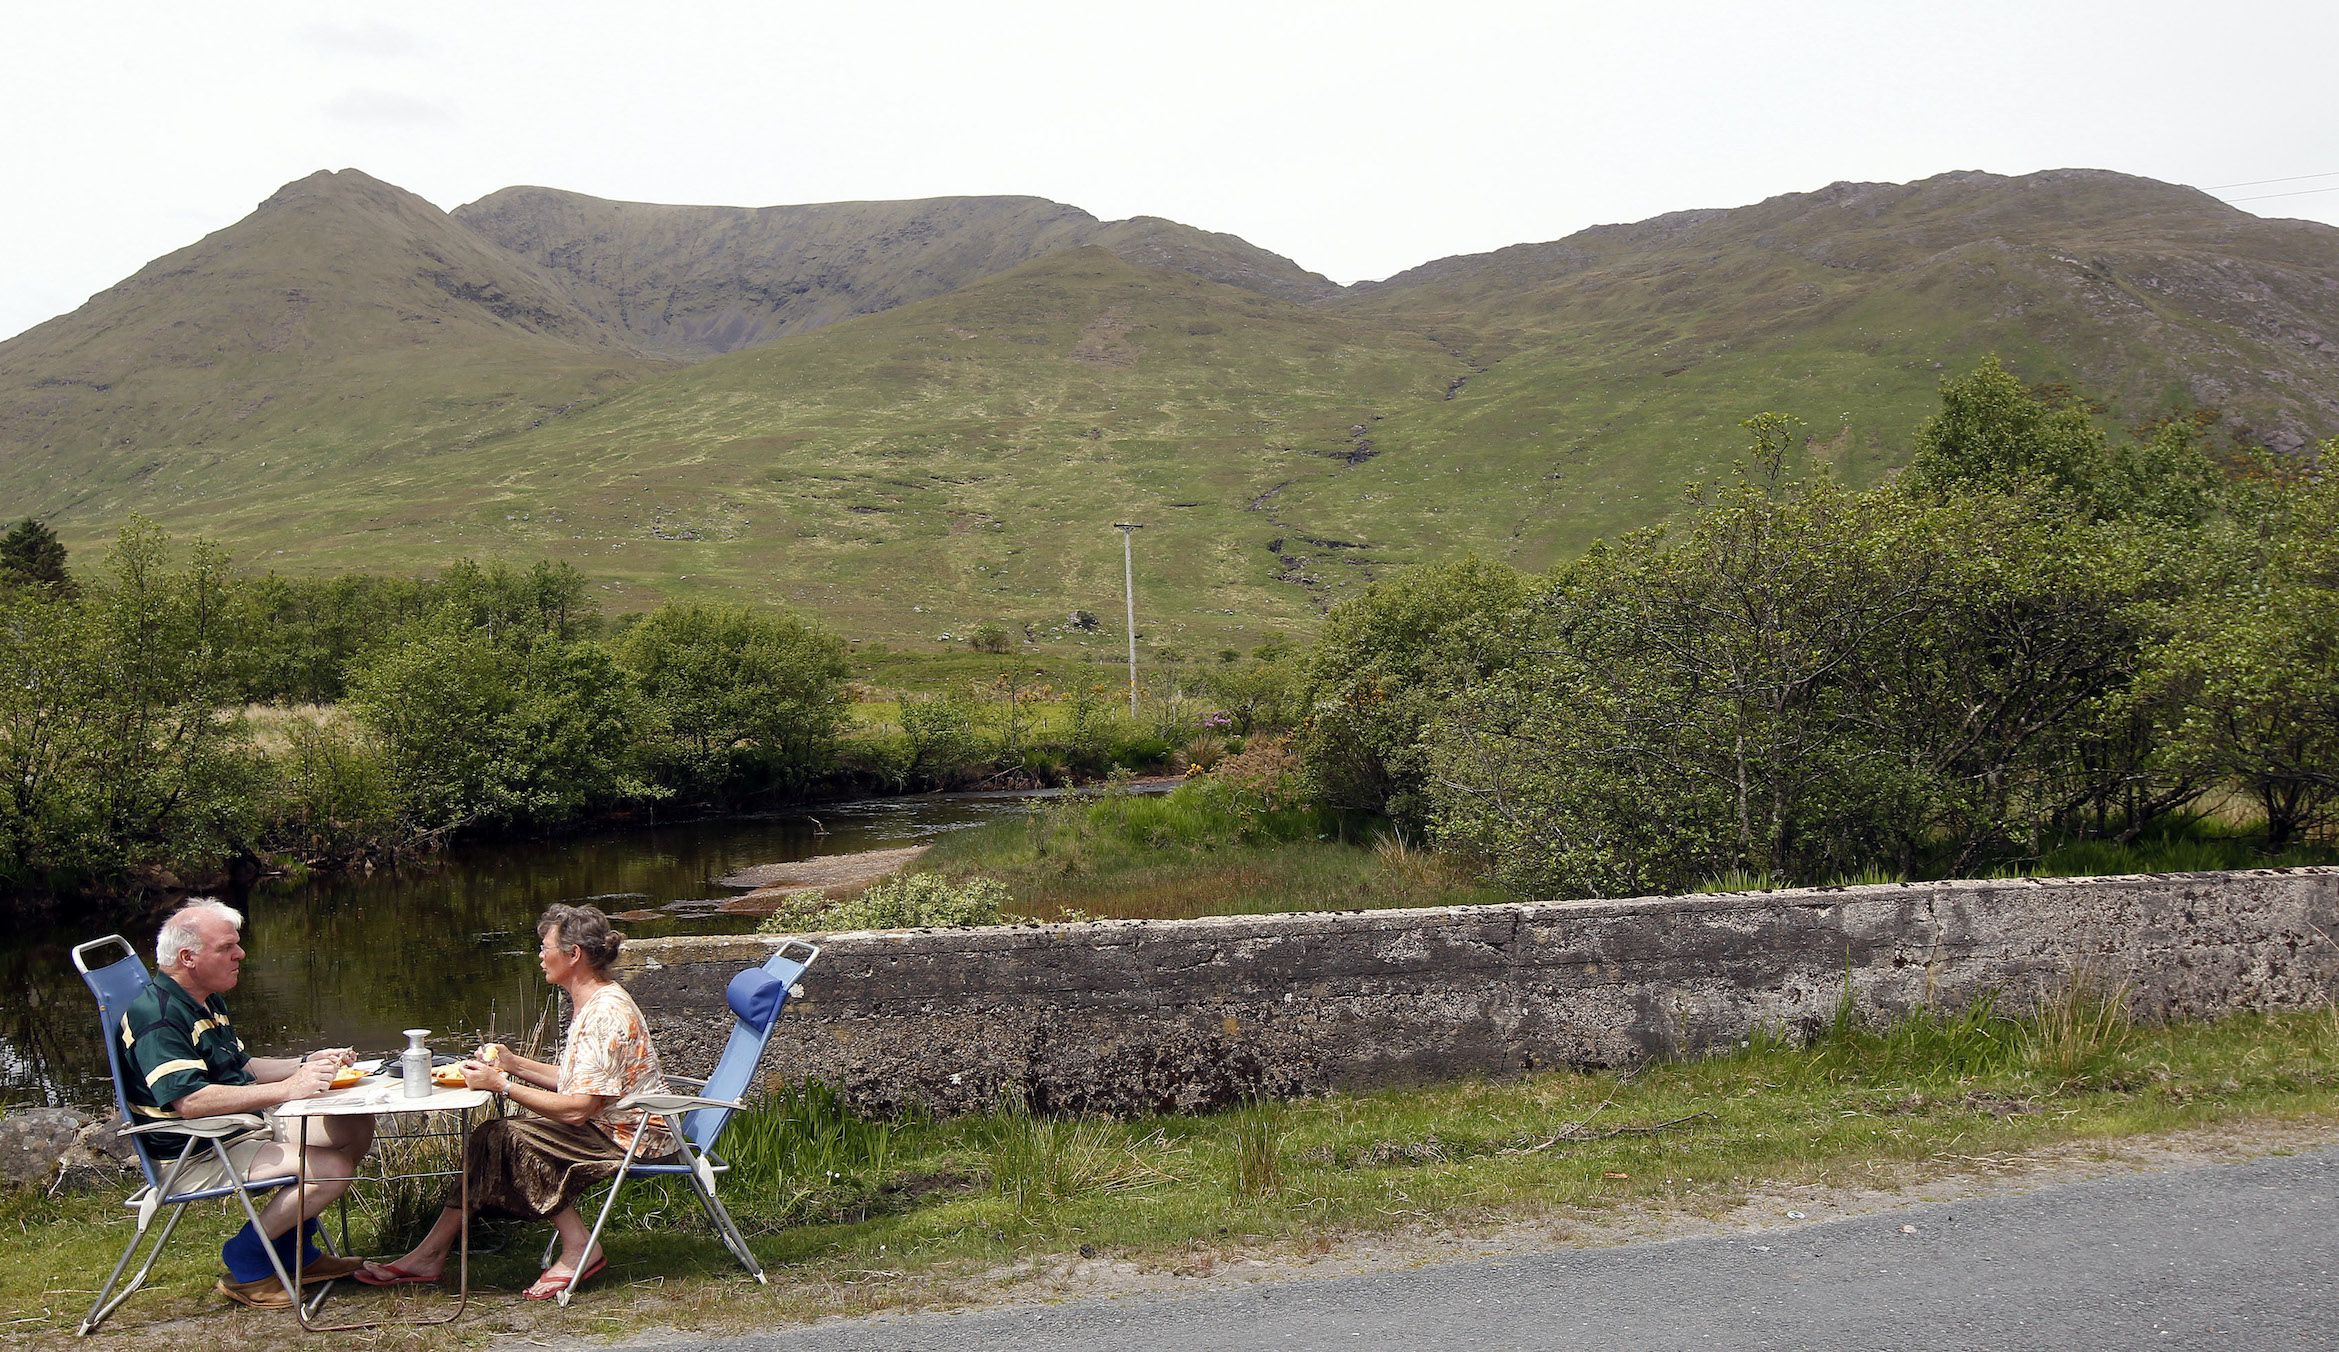 Tourists eat their lunch by the roadside in the Doo Lough Pass near the town of Wesport in County Galway on the West Coast of Ireland May 30, 2010. REUTERS/Cathal McNaughton (IRELAND - Tags: SOCIETY TRAVEL) - RTR2EKB0